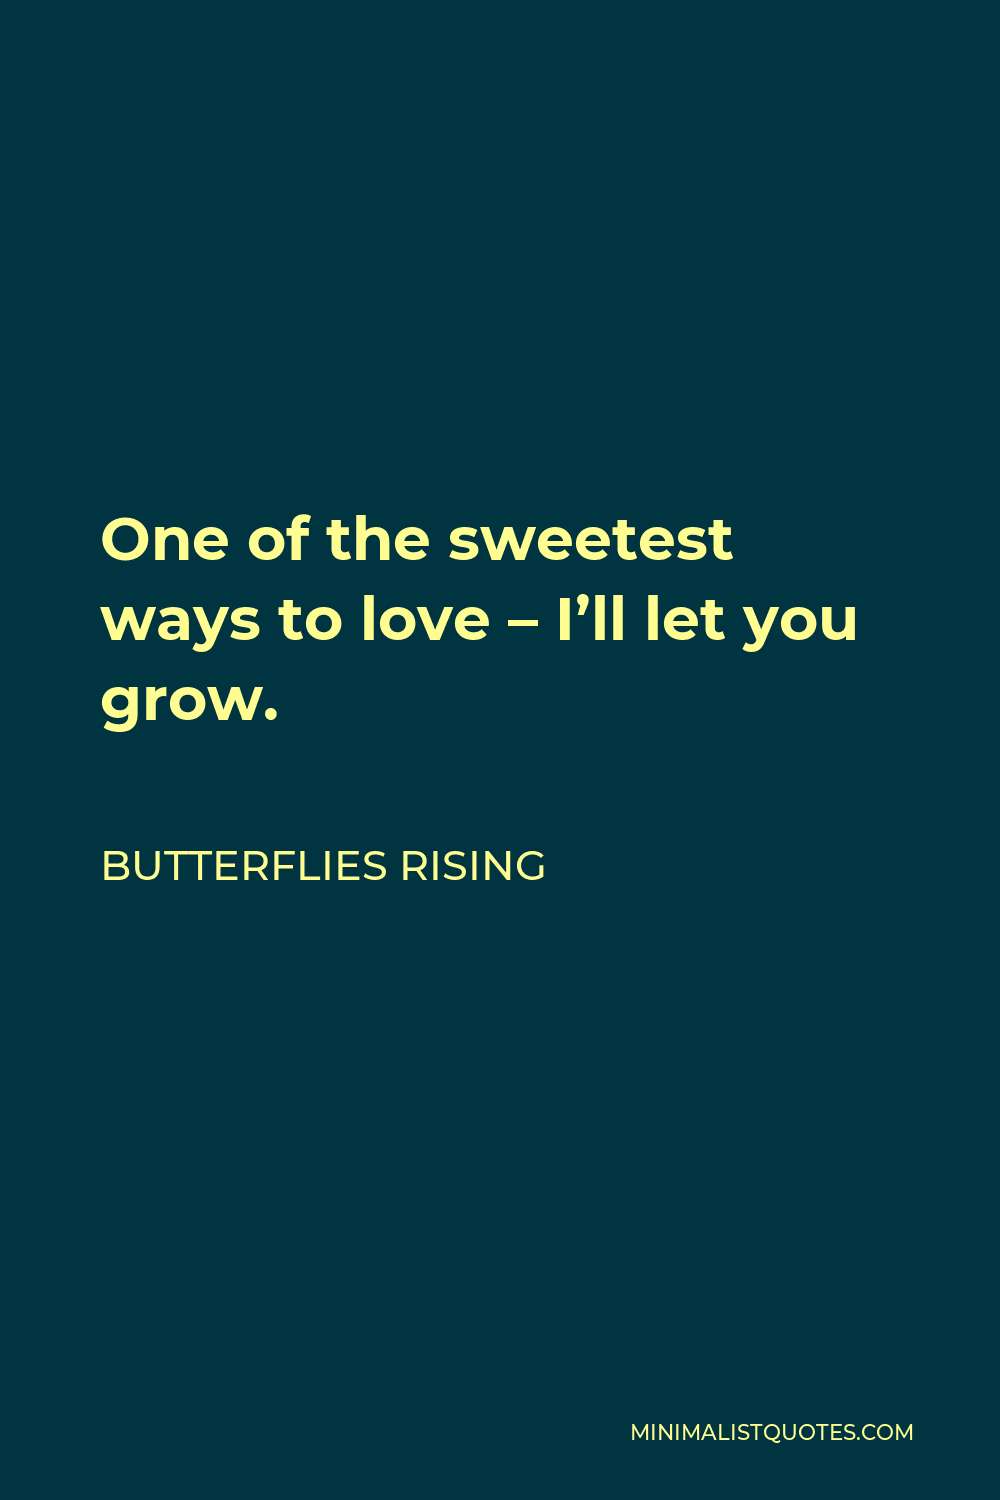 Butterflies Rising Quote - One of the sweetest ways to love – I'll let you grow.